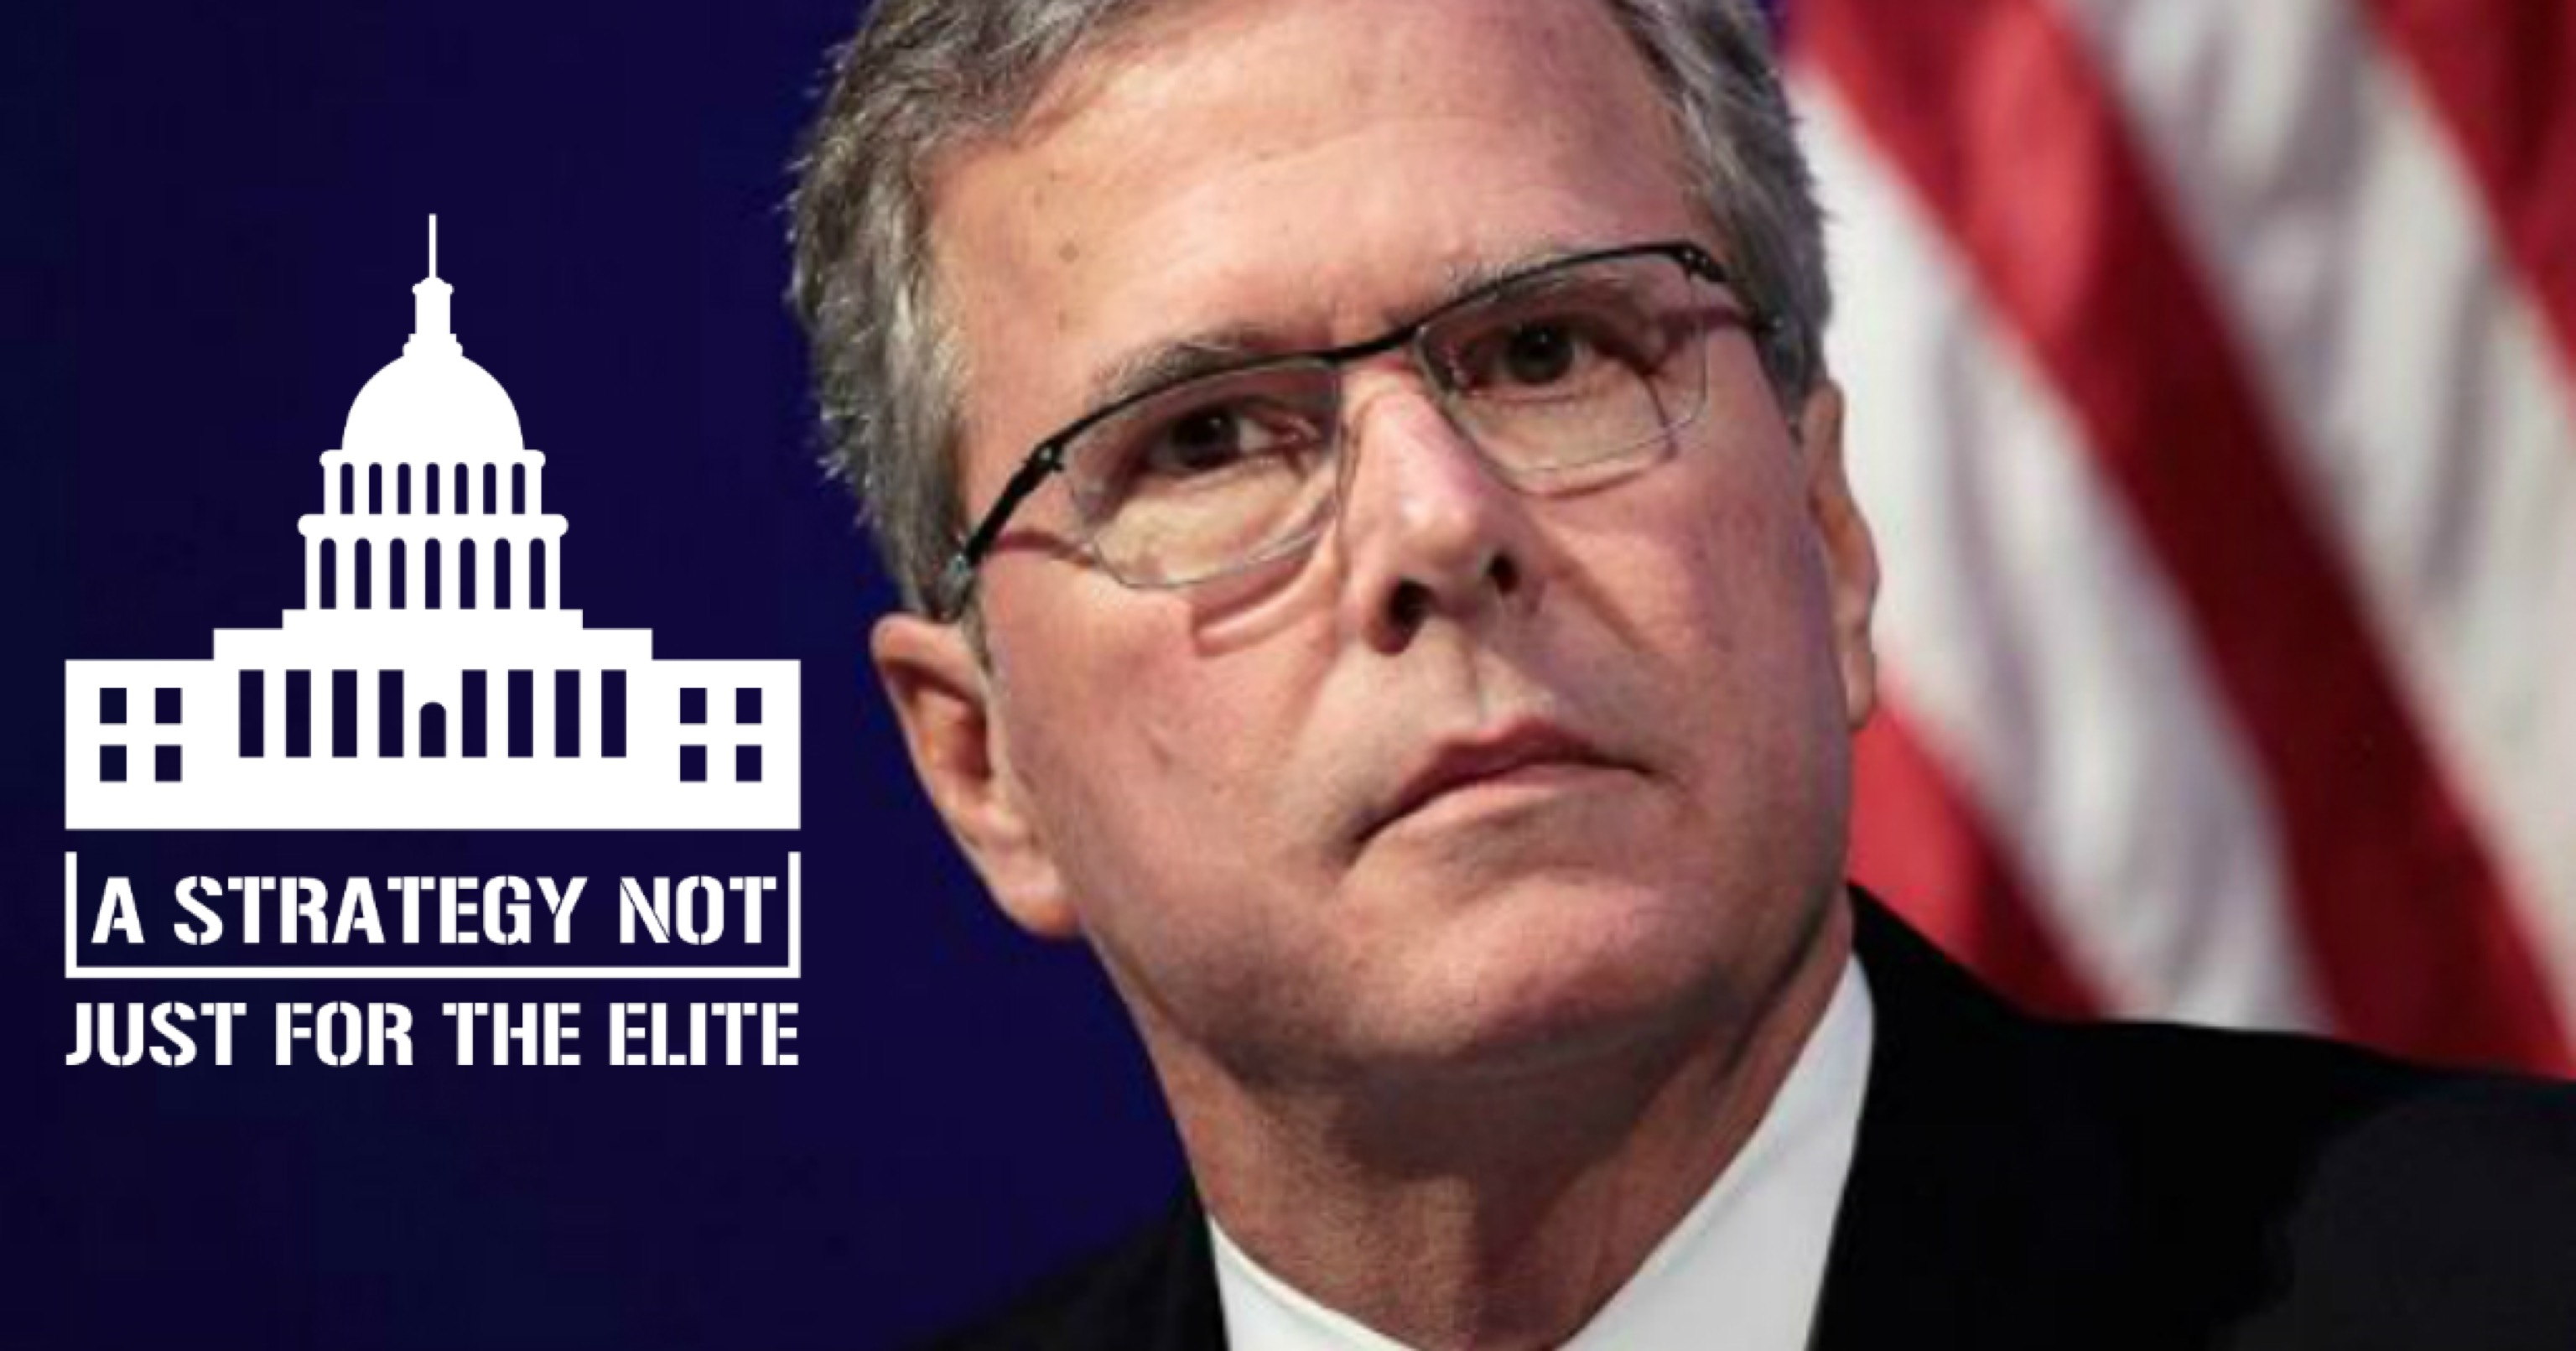 Use The Jeb Bush Little-Known But Perfectly Legal Strategy To Save Up To $350,000 Per Year